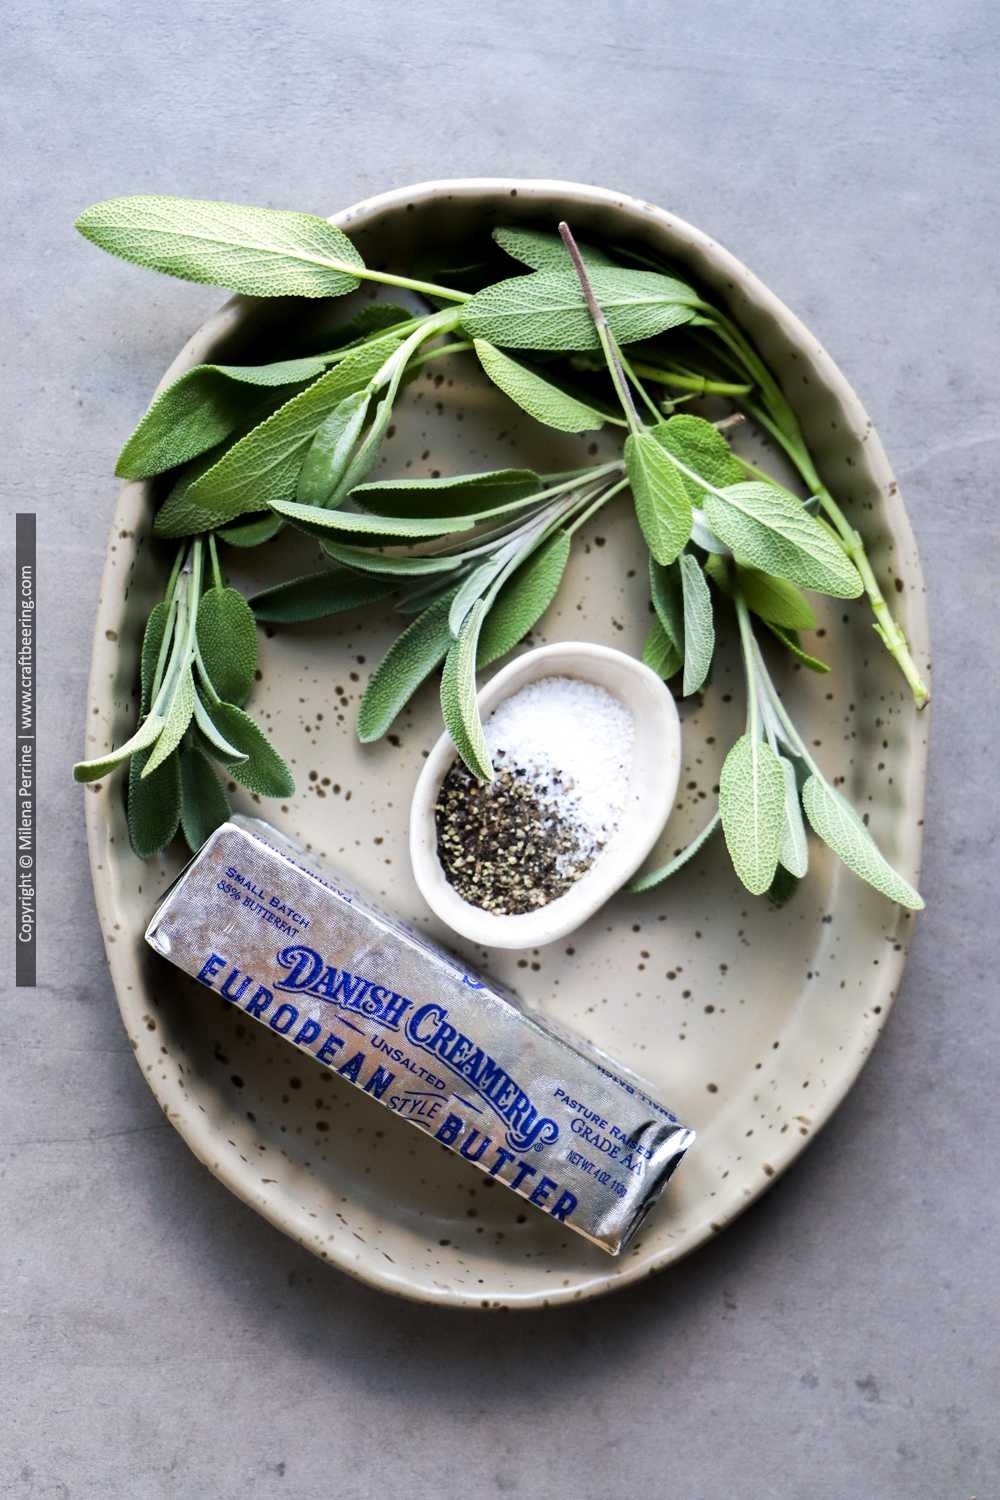 Fresh sage, European style unsalted butter, salt and pepper come together to make brown butter and sage sauce for ravioli, butternut squash and more.